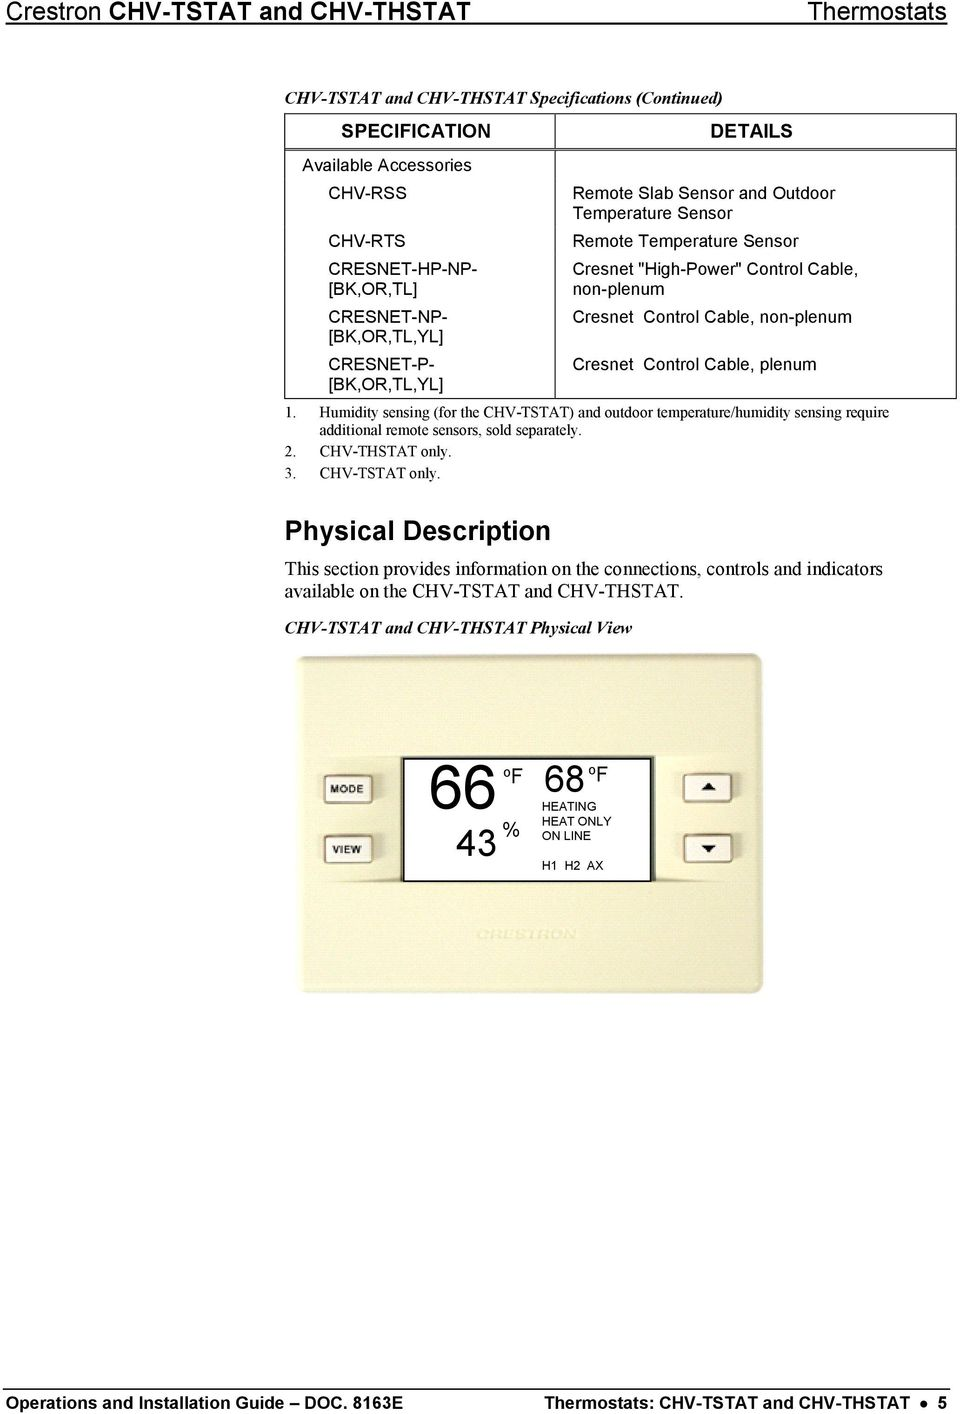 Crestron Chv Tstat Thstat Thermostats Operations And Master Flow H1 Humidistat Wiring Diagram Non Plenum Cresnet Control Cable 1 Humidity Sensing For The